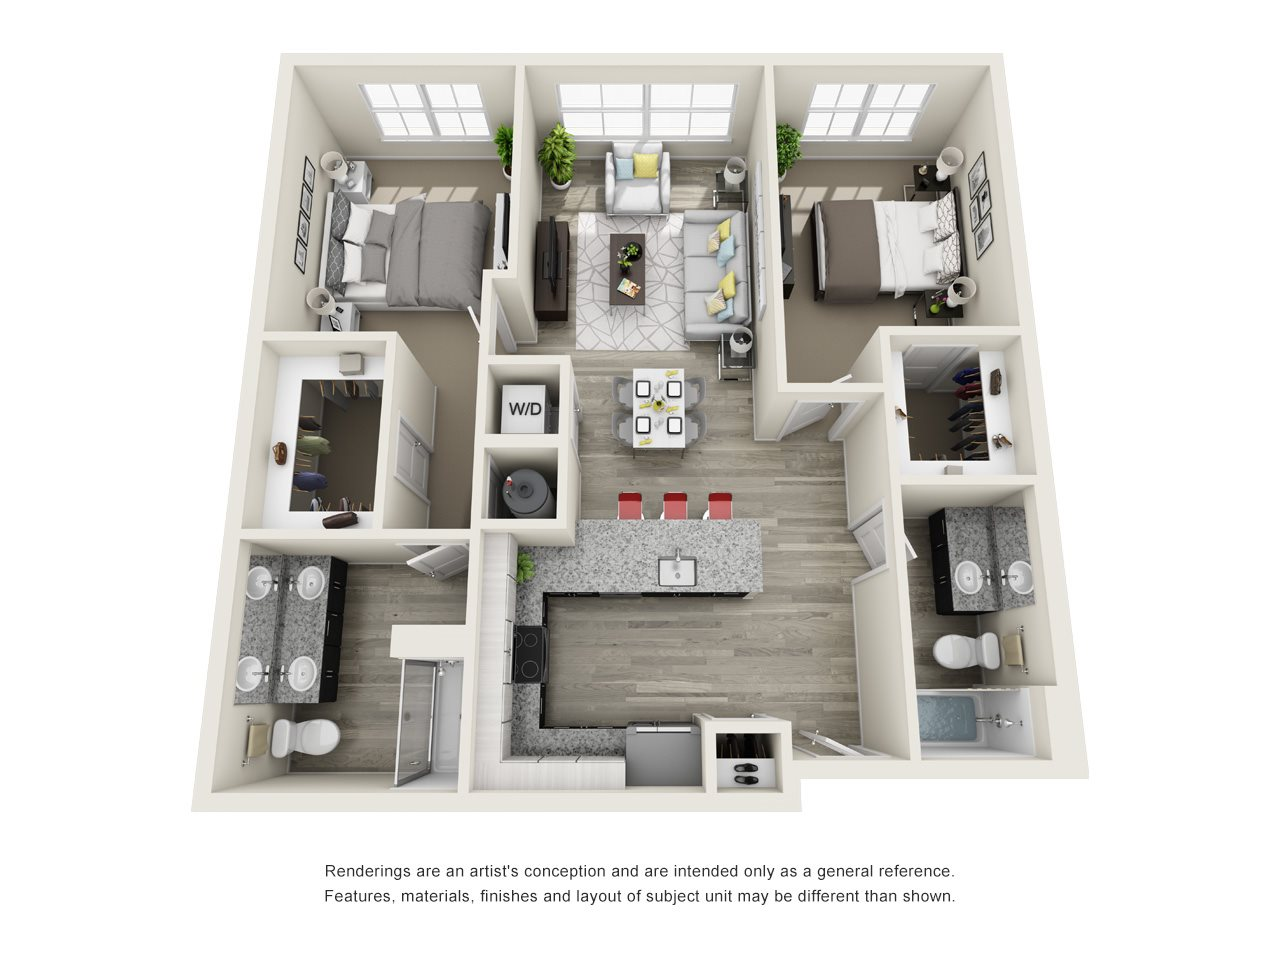 2 Bedroom, 2 Bath 1074 sqft Floor Plan 13